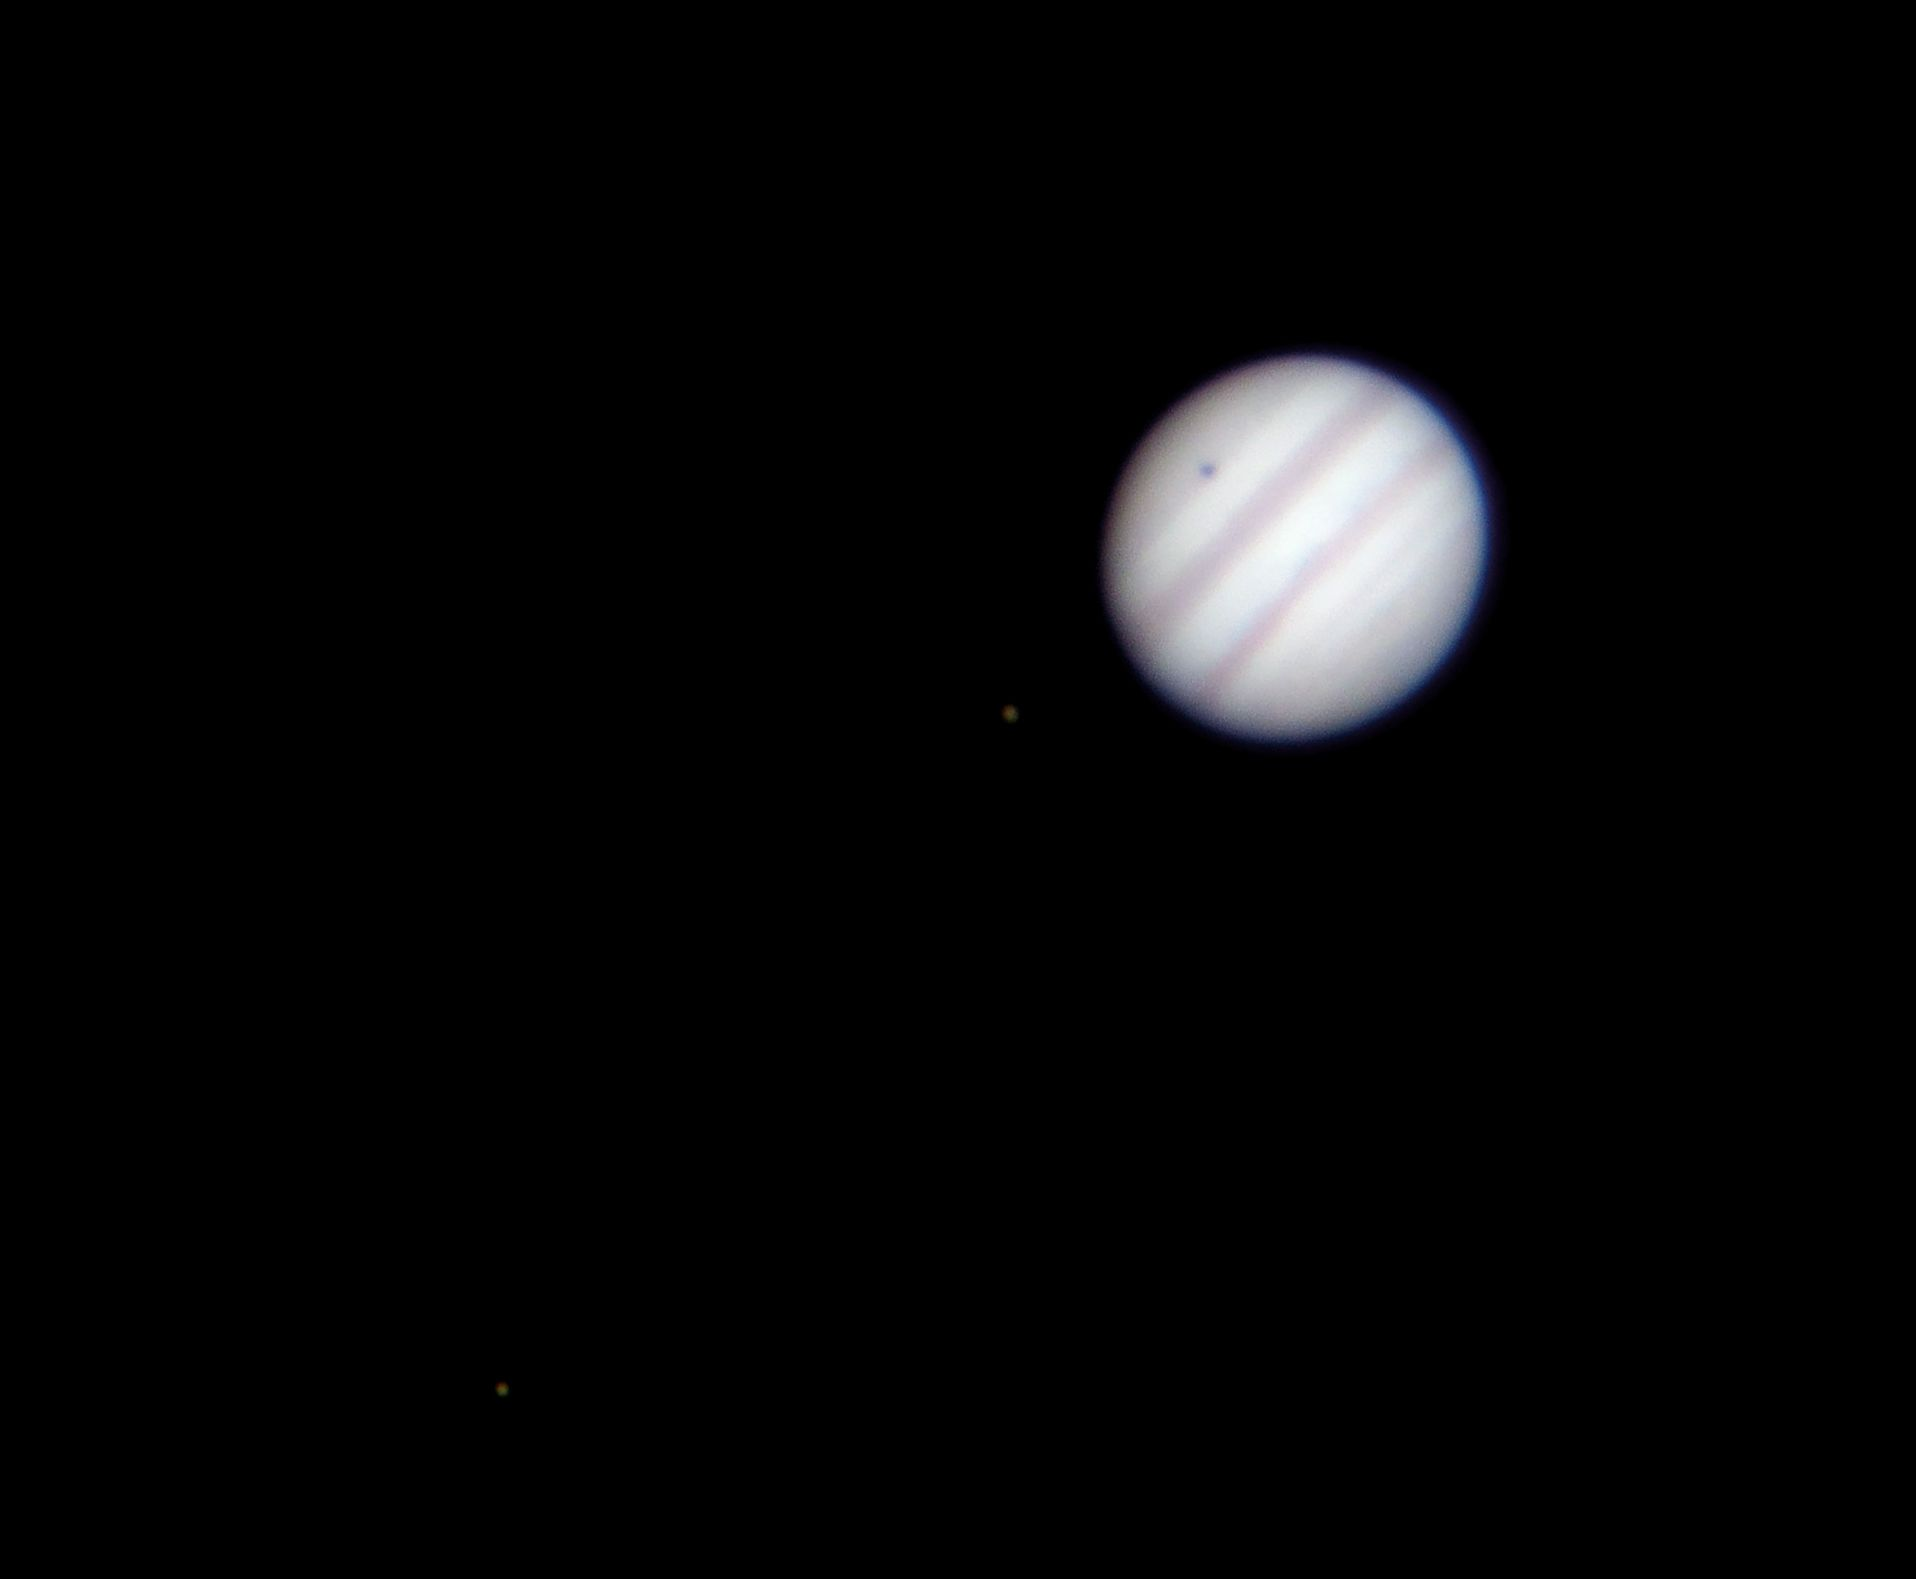 Jupiter and two moons / Callisto shadow transit at US Store